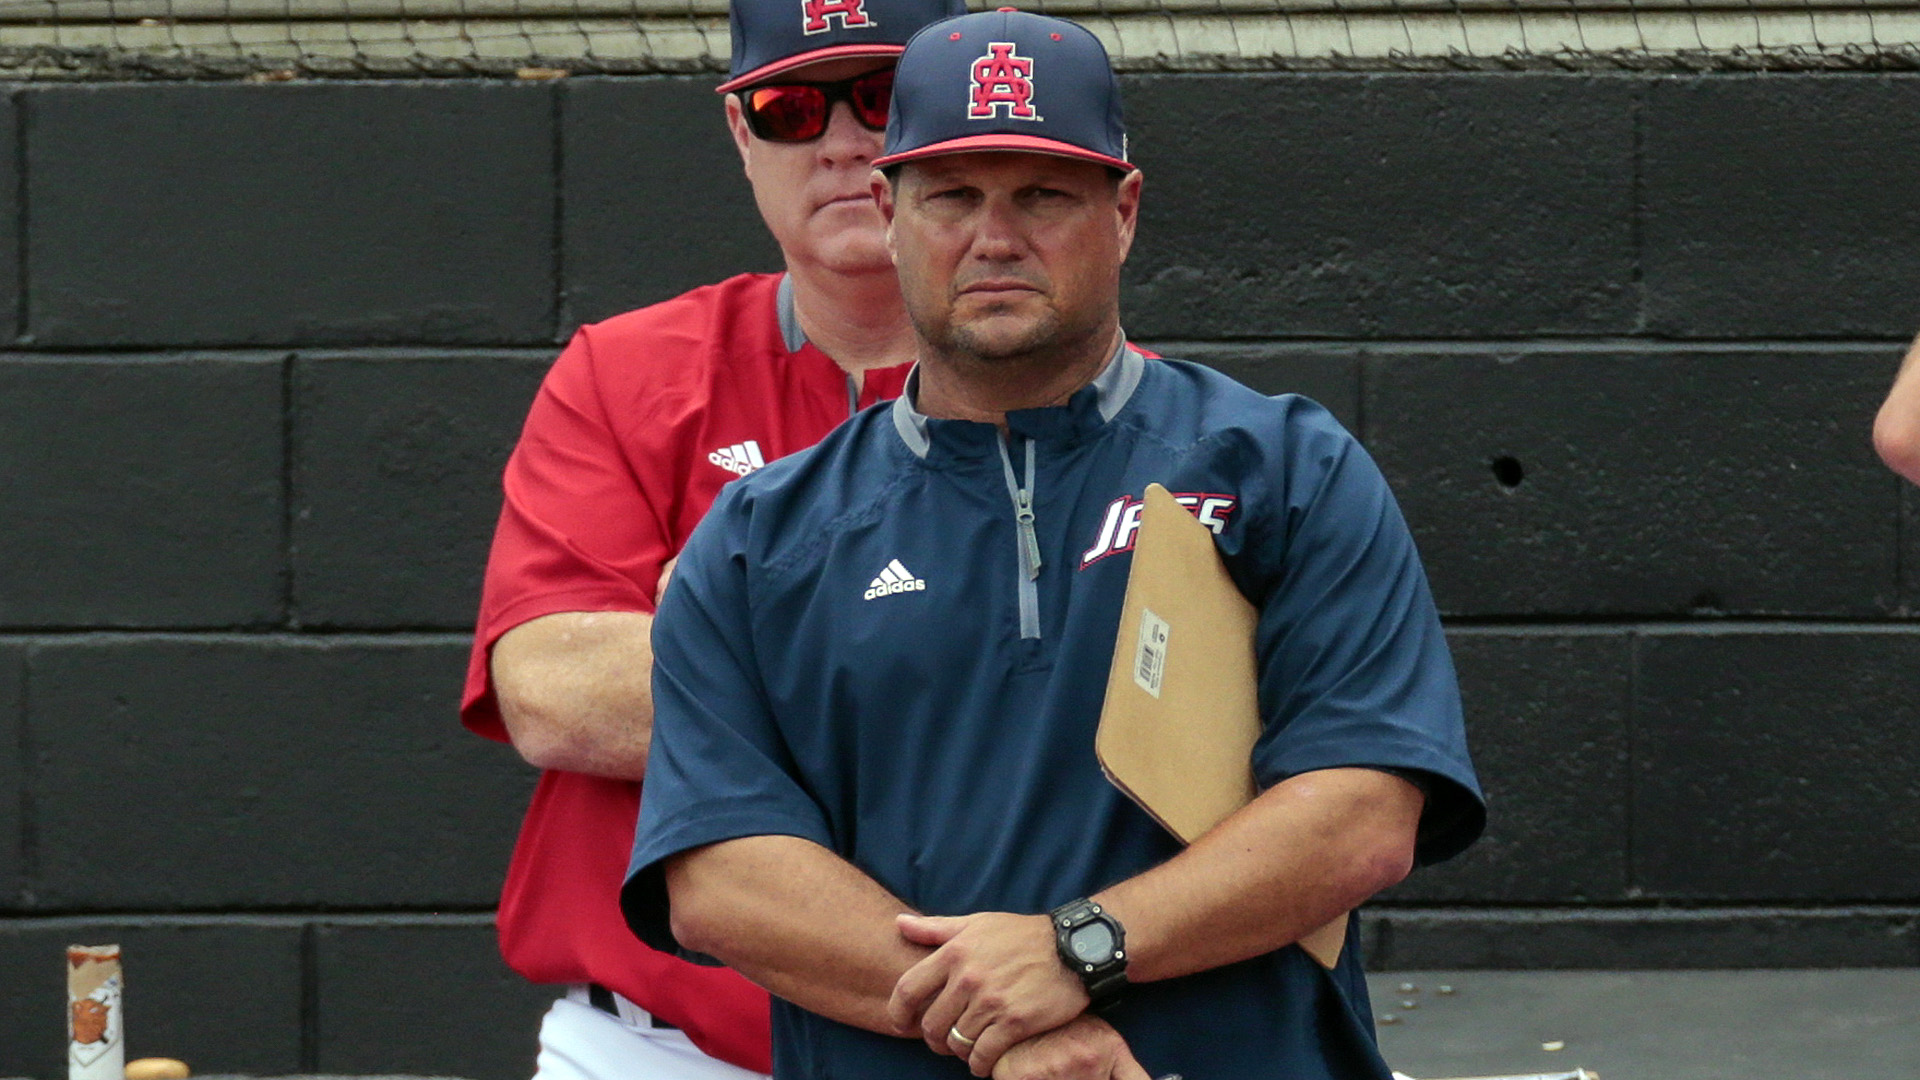 WNSP interview with head coach of the South Alabama Jaguars baseball team, Mark Calvi!